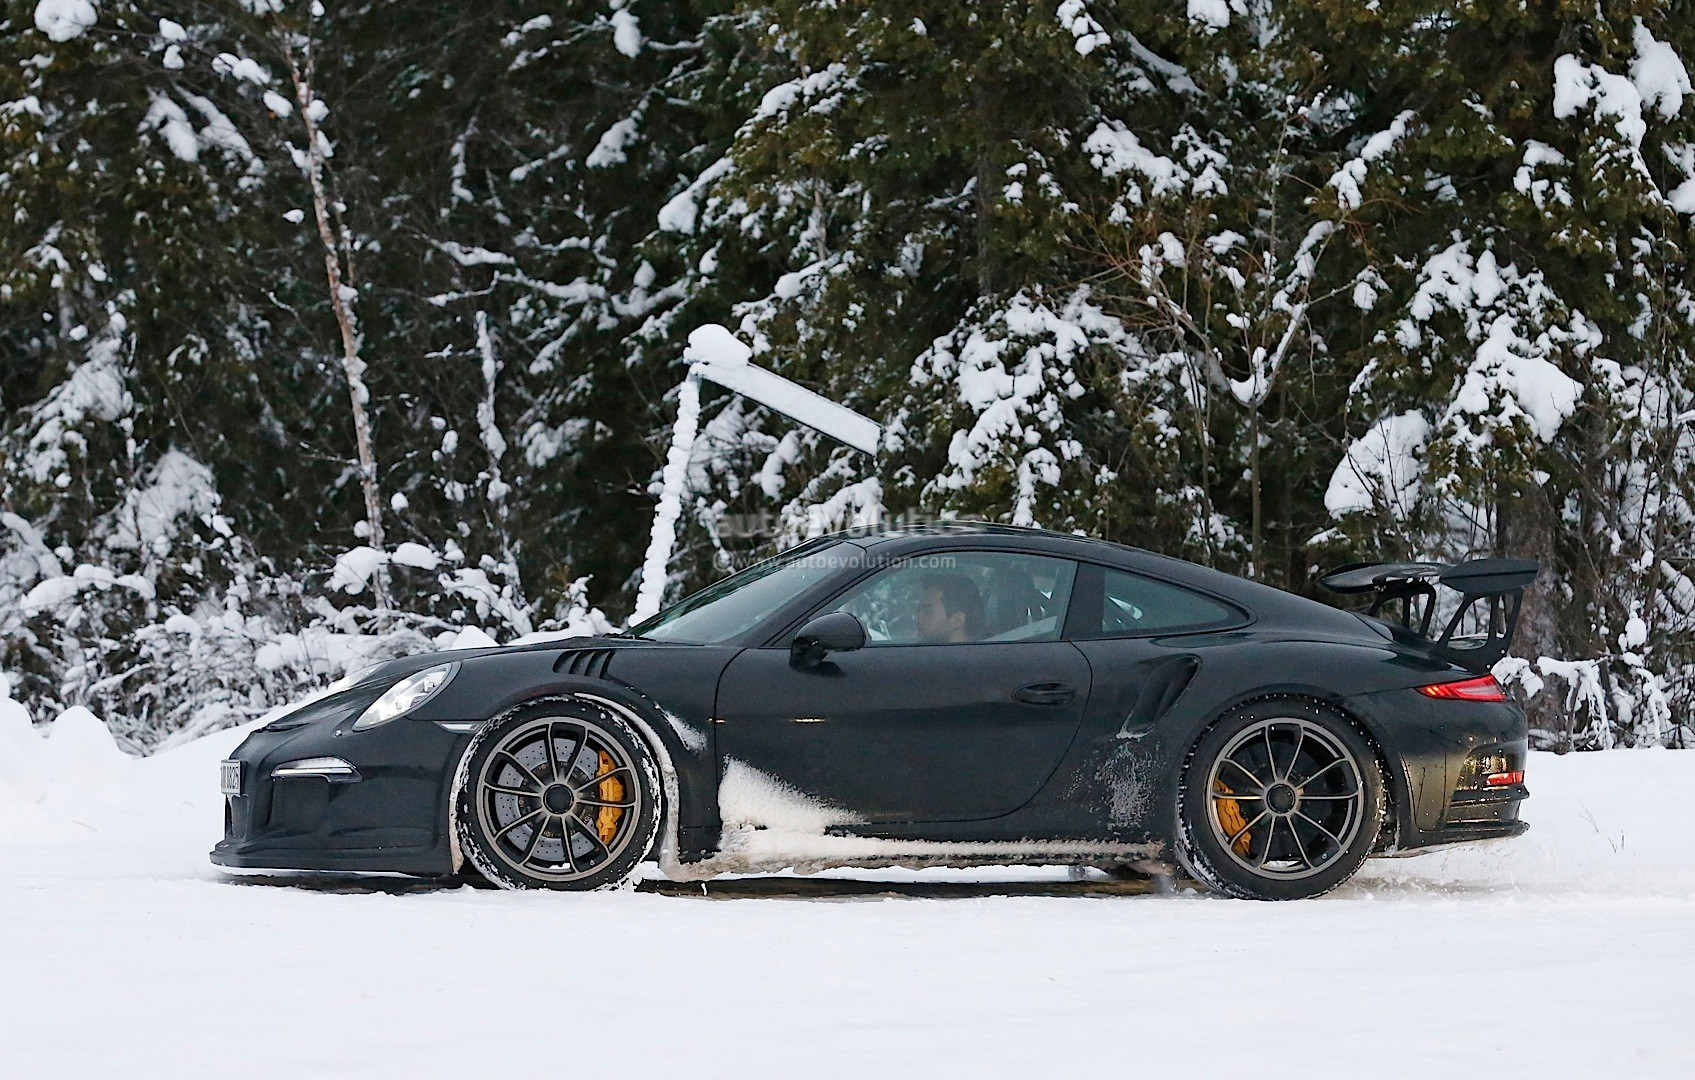 2015 Porsche 911 Gt3 Rs Spied Playing In The Snow